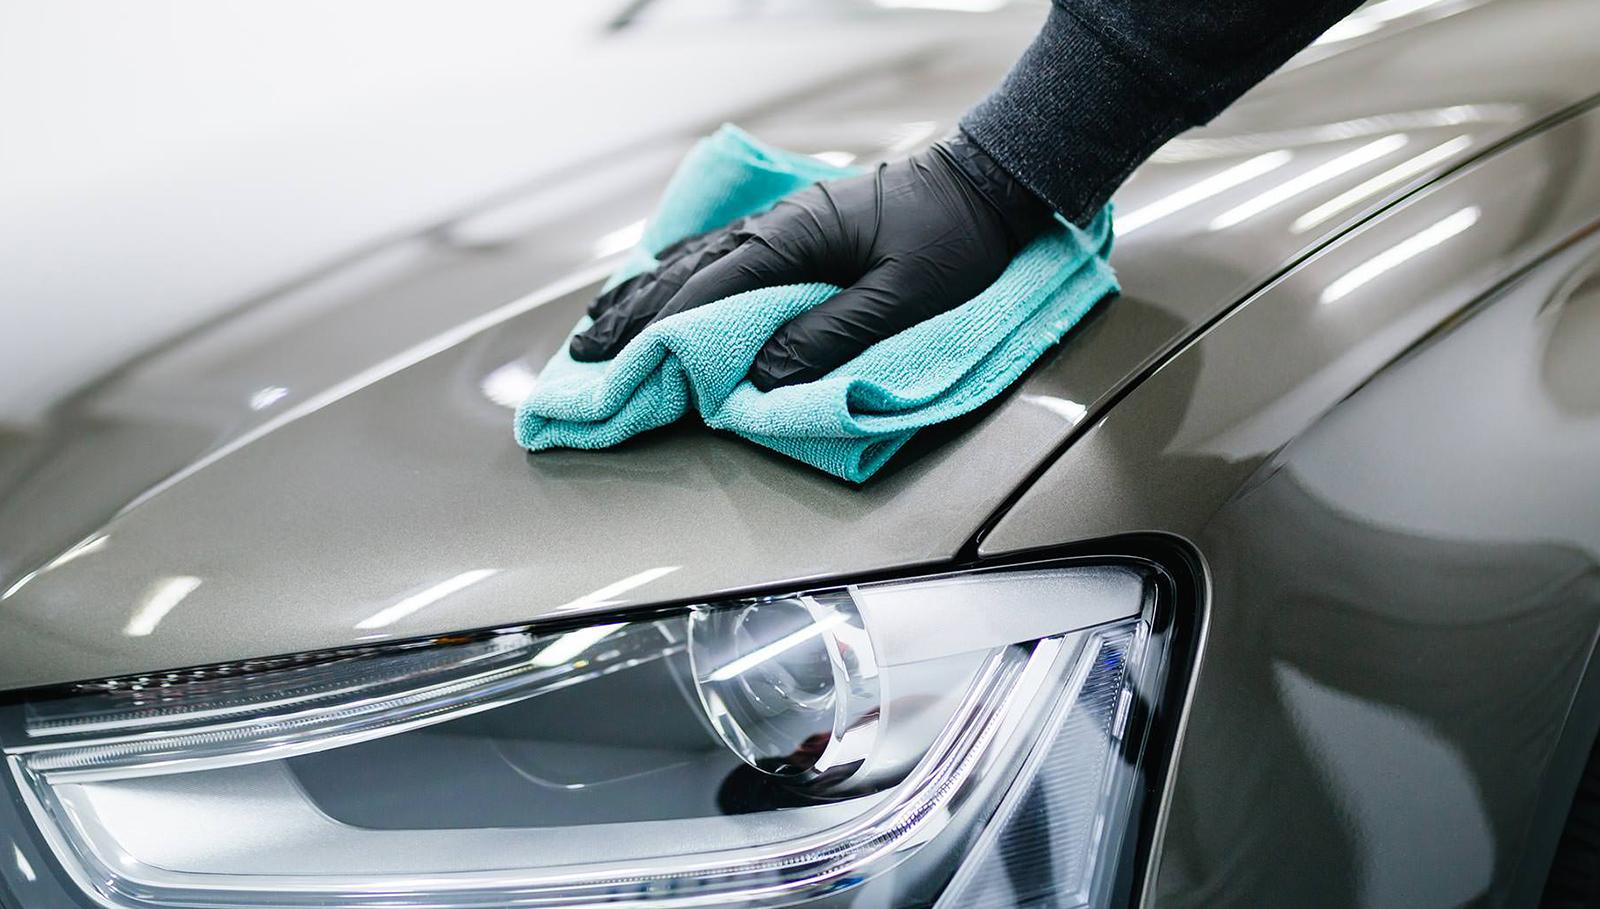 https://fastcleanservice.nl/